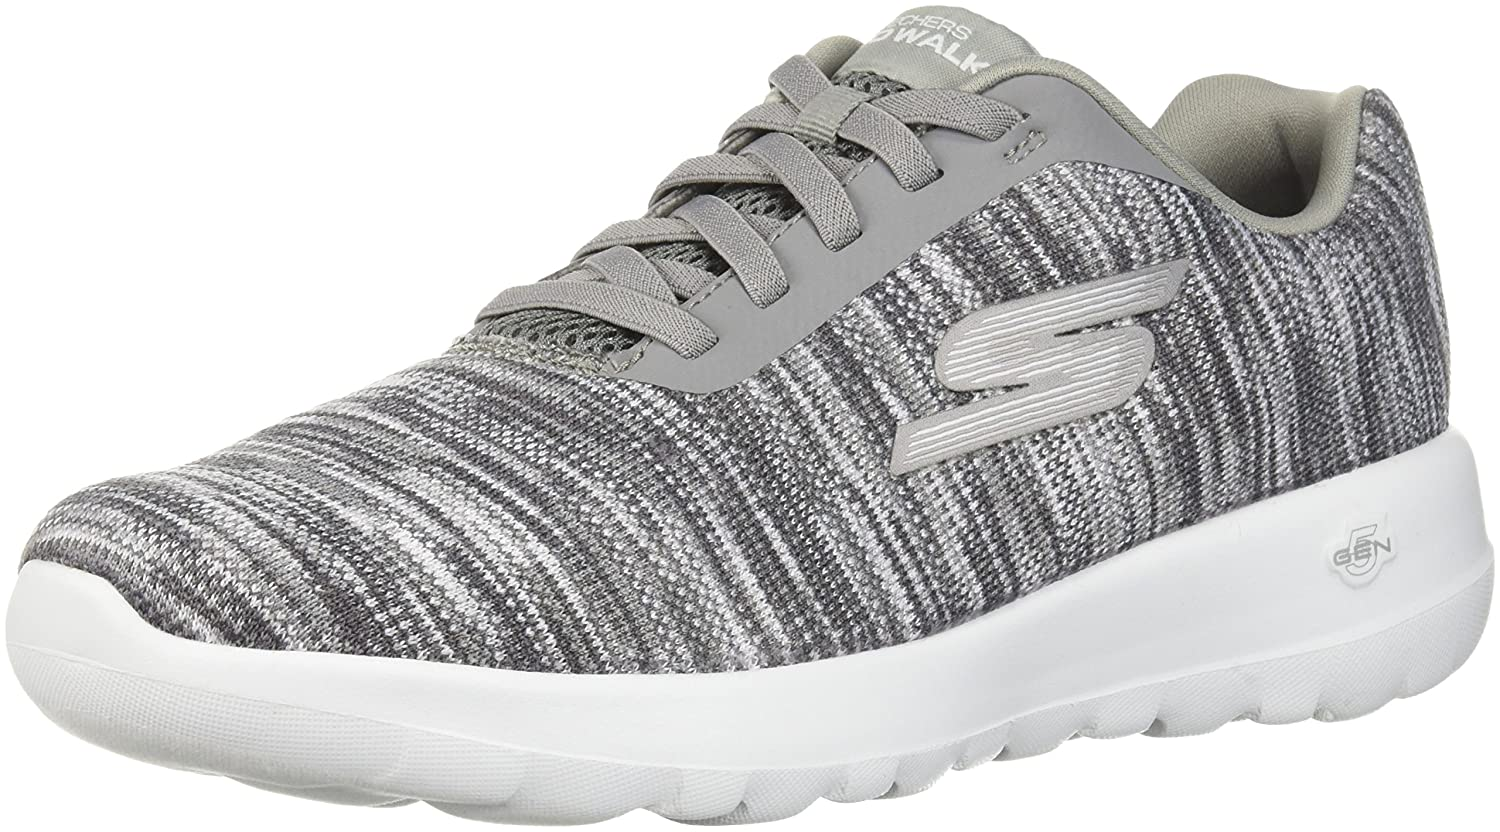 Skechers Women's Go Walk Joy-Invite Sneaker B078GPWSJV 9 M US|Gray